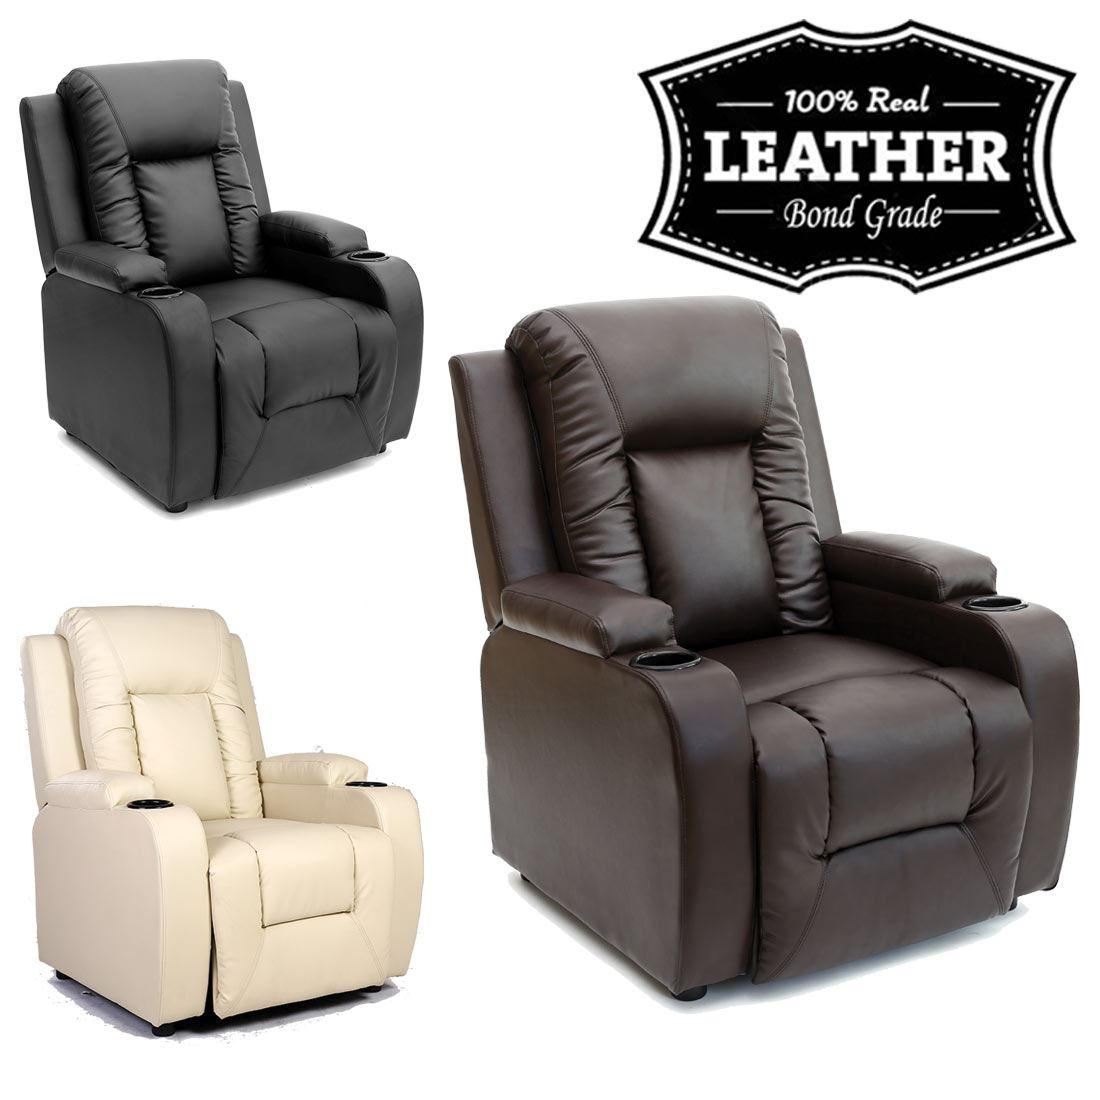 Oscar Leather Recliner W Drink Holders Armchair Sofa Chair Throughout Sofa Chair Recliner (Image 14 of 20)